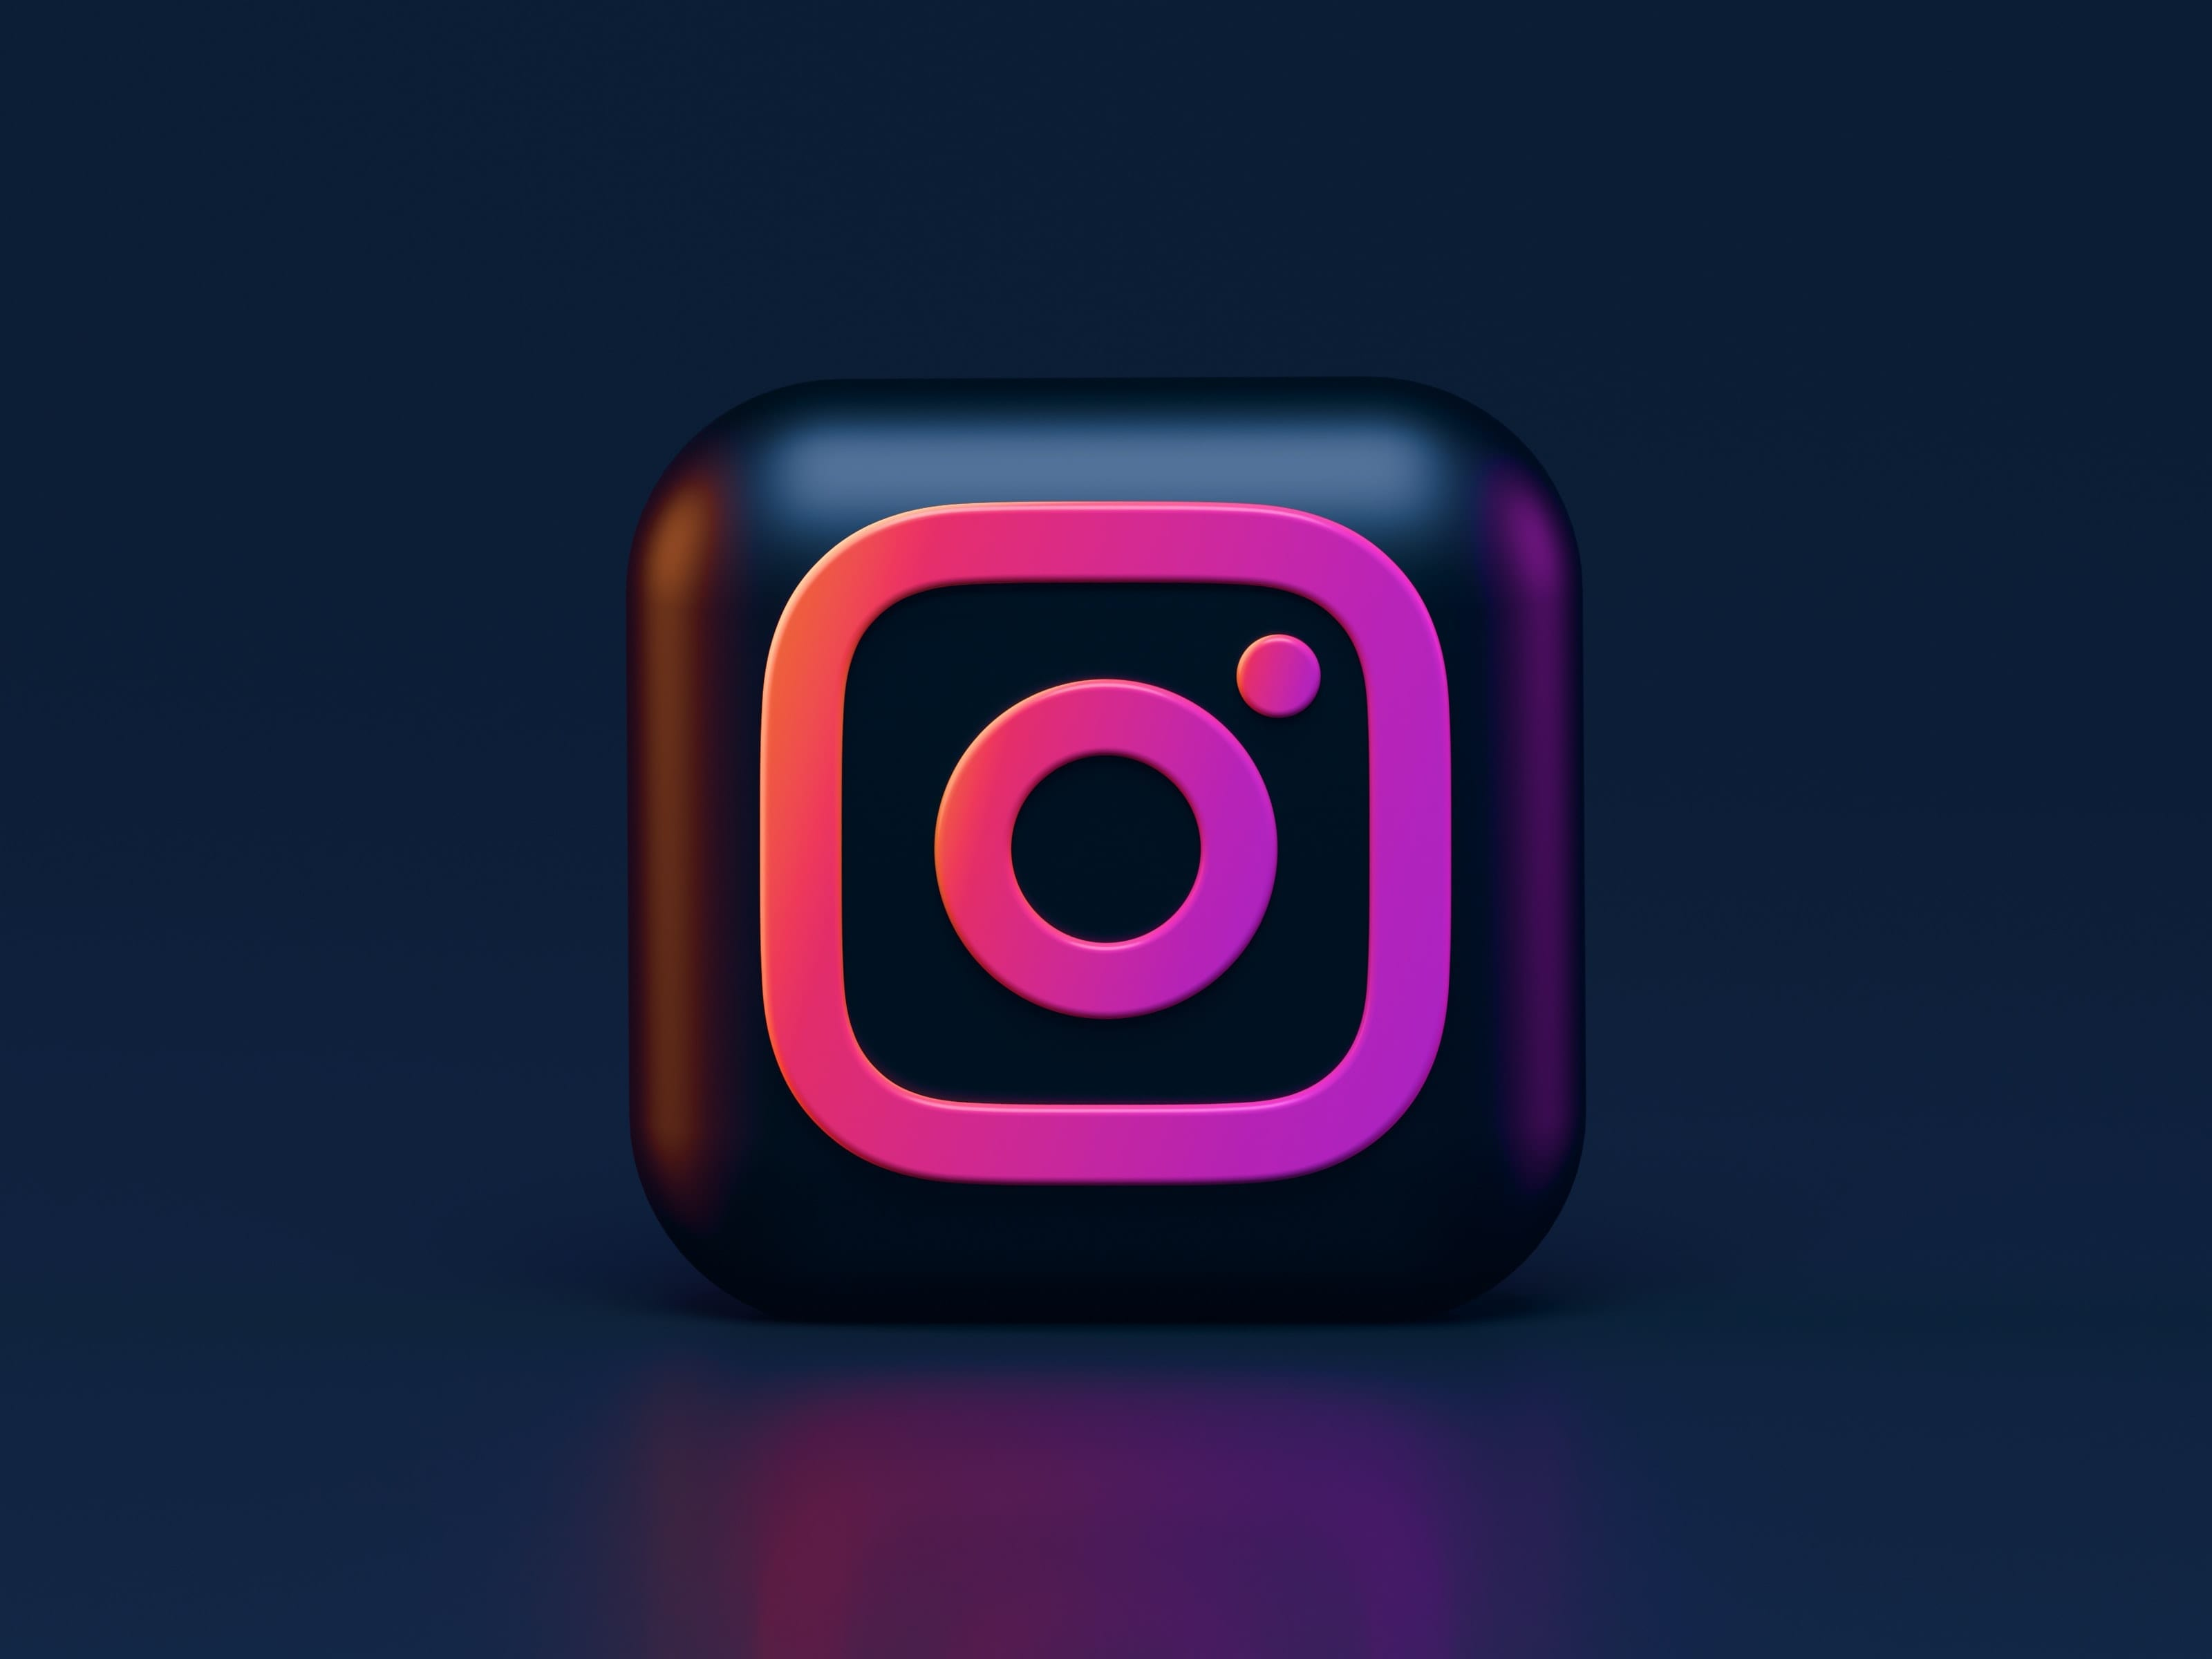 graphic design of instagram logo with black background